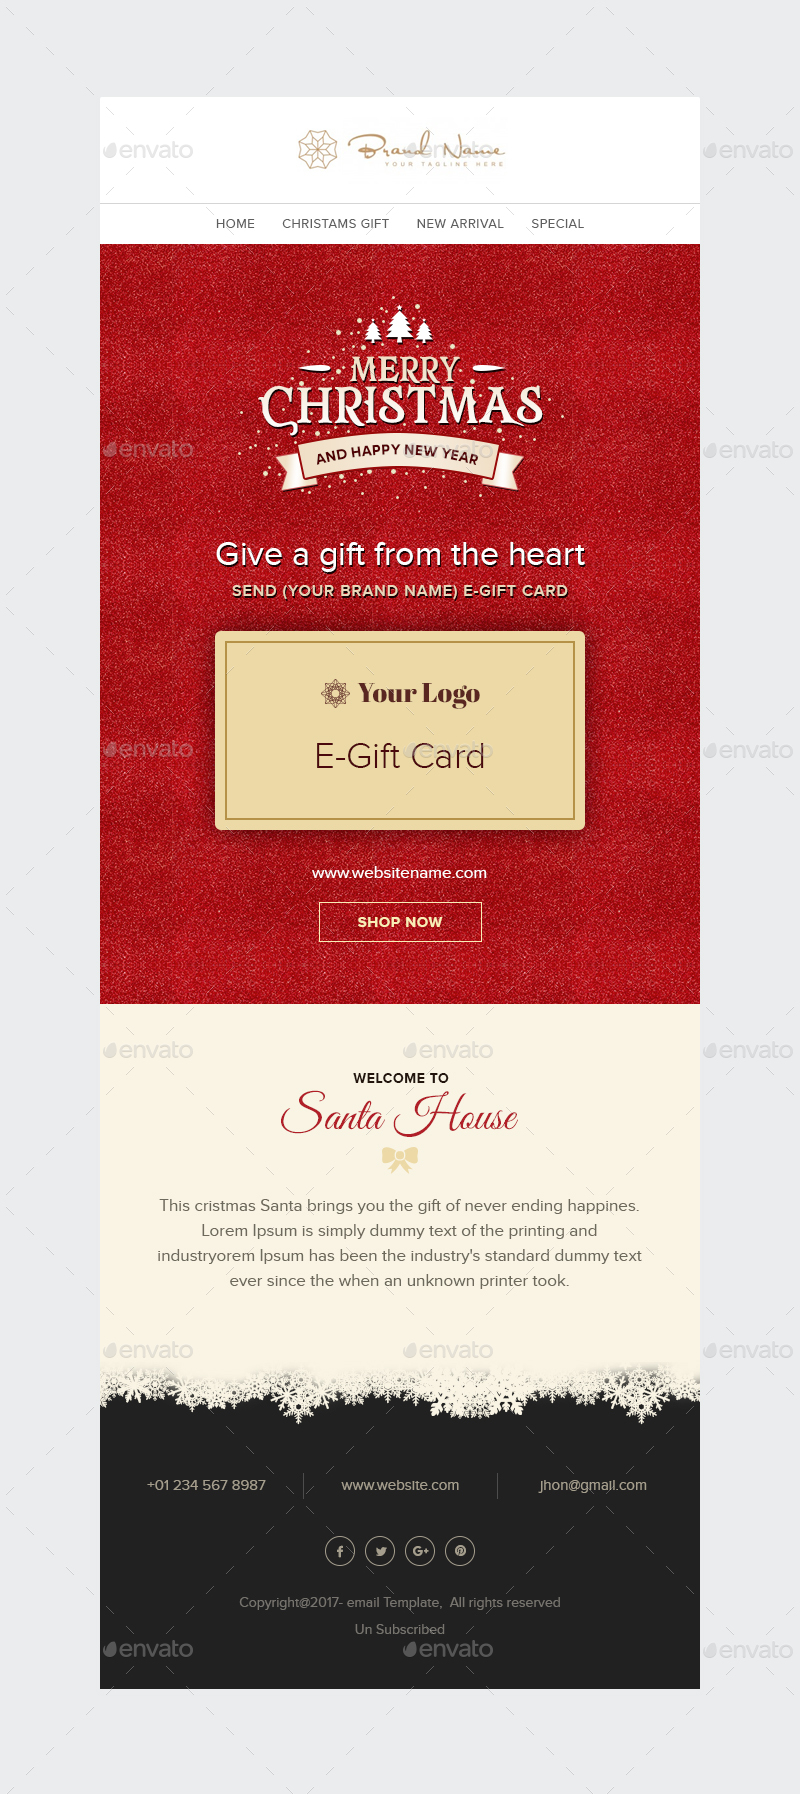 X-mas E-Gift - Christmas E-Gift card Email Template PSD by ...